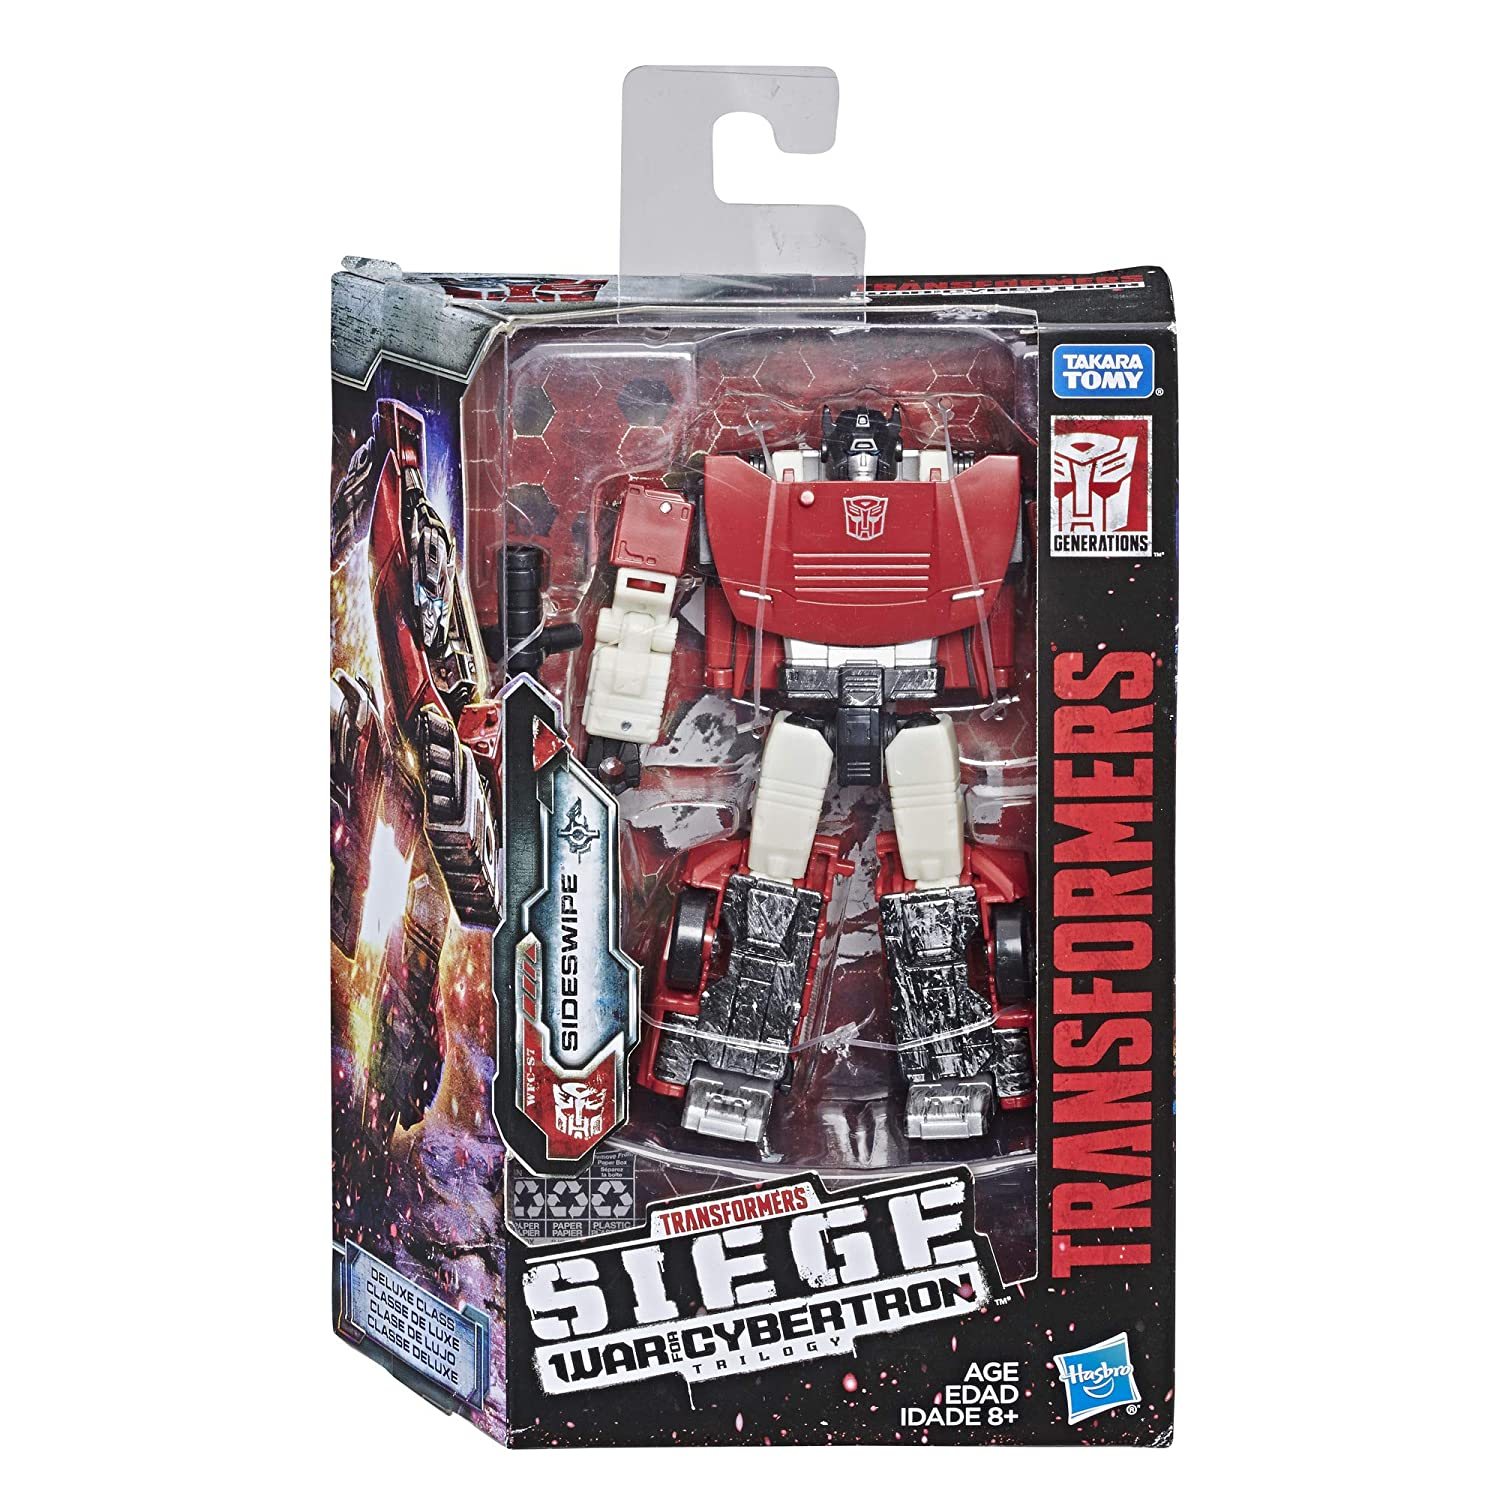 Transformers Generations War for Cybertron Siege Deluxe Class Wfc-S10 SIDESWIPE Action Figure Hasbro E3530